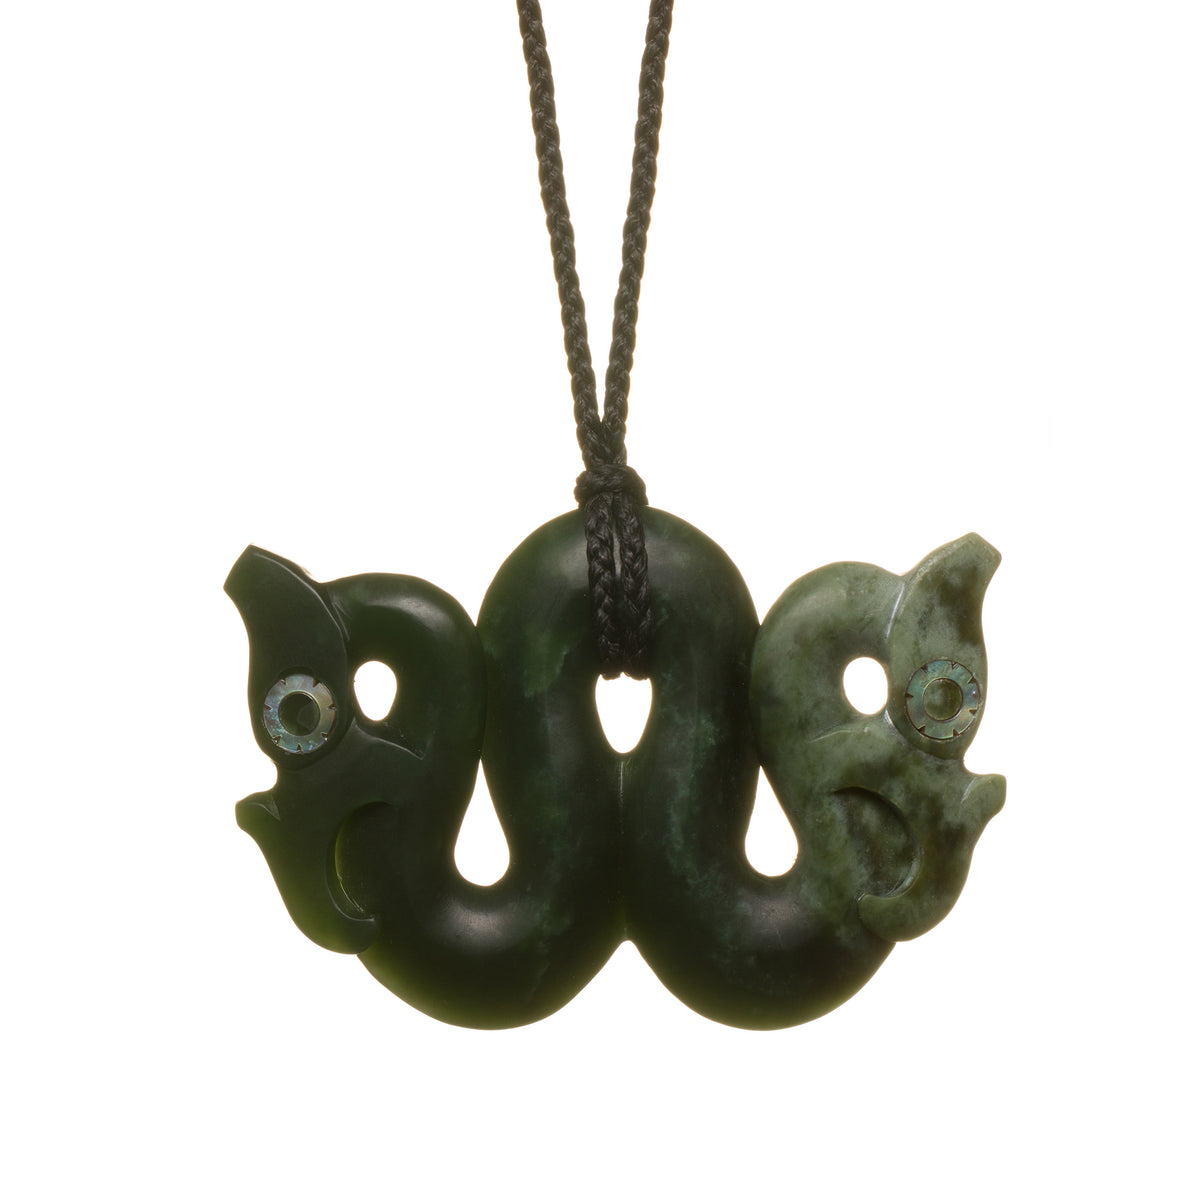 New Zealand Pounamu Double Headed Manaia